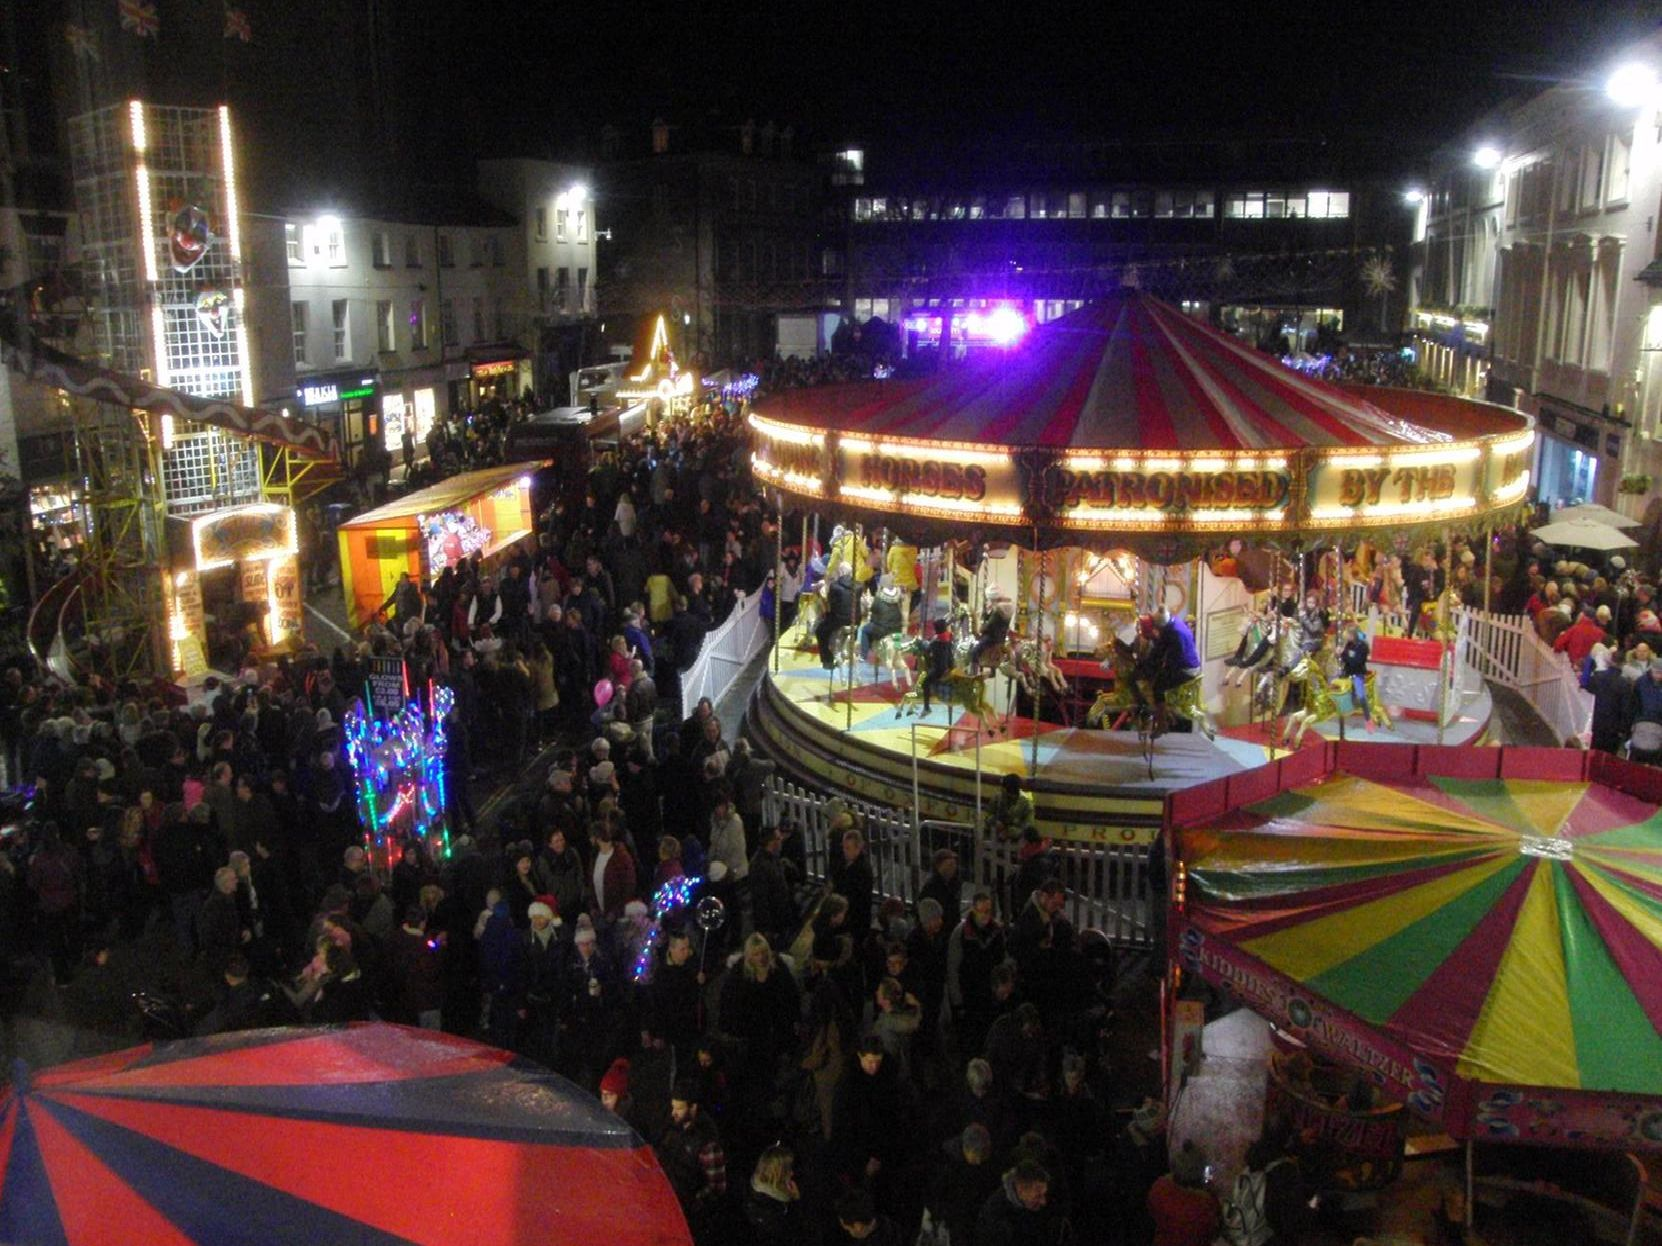 Photo from Warwick's Victorian Evening and Christmas lights switch on. Photo by Geoff Ousbey